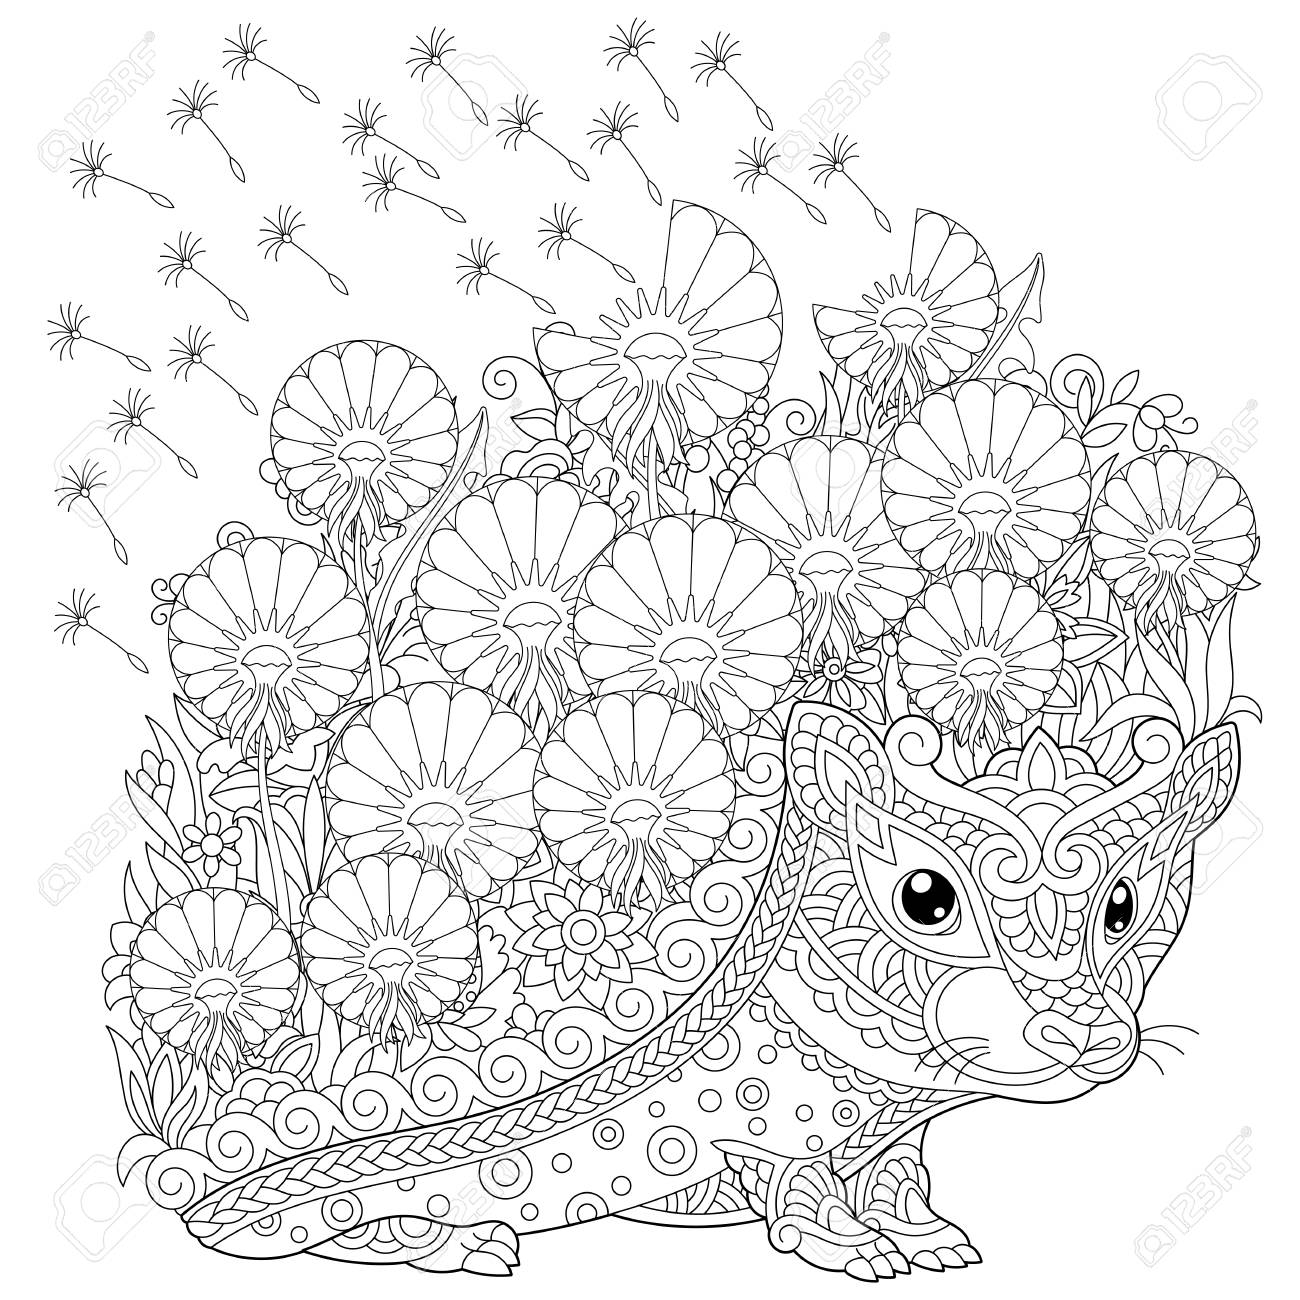 Hedgehog Coloring Book for Adults Animal Adults Coloring Book